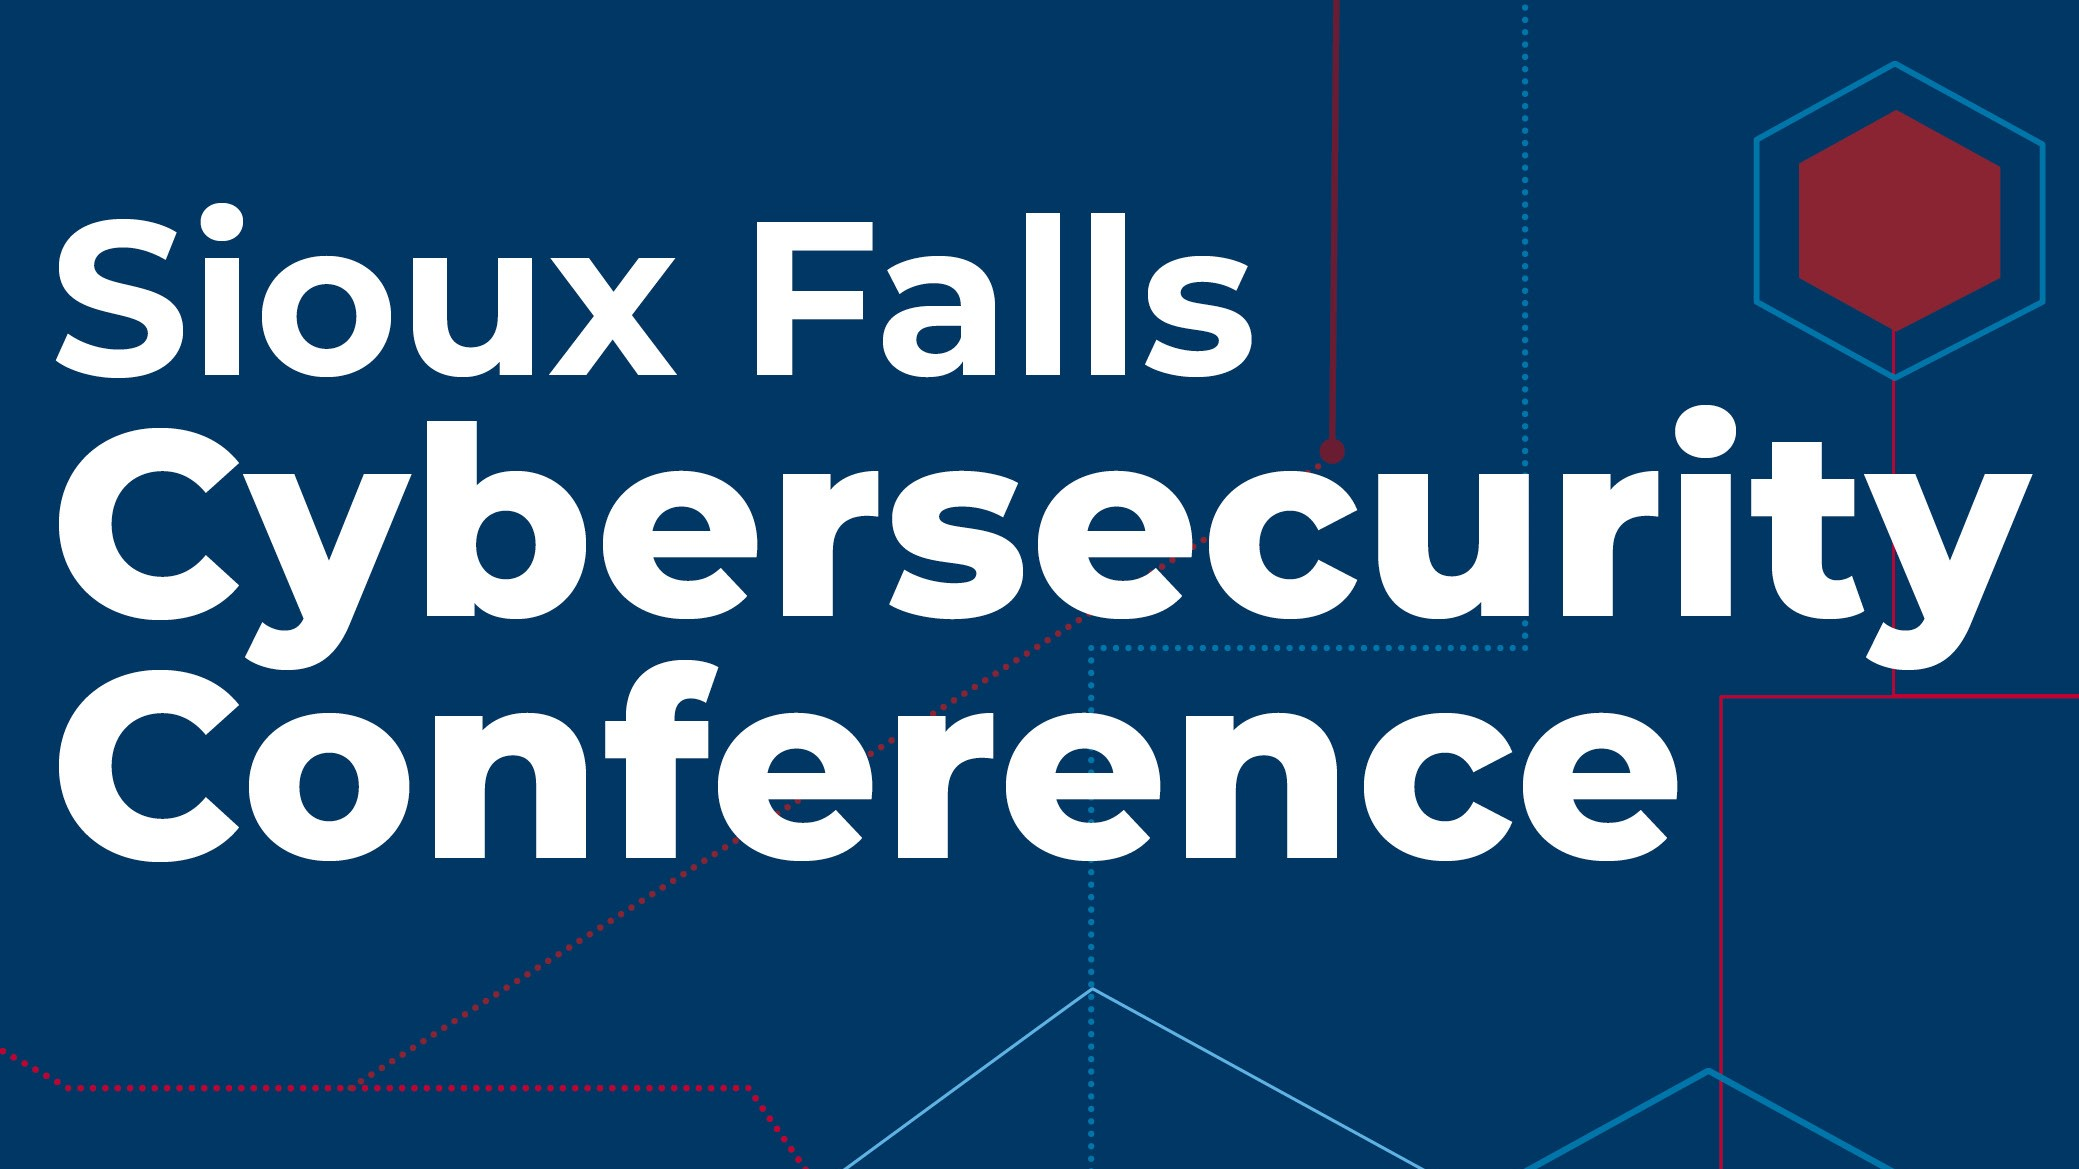 Sioux Falls Cybersecurity Conference2021